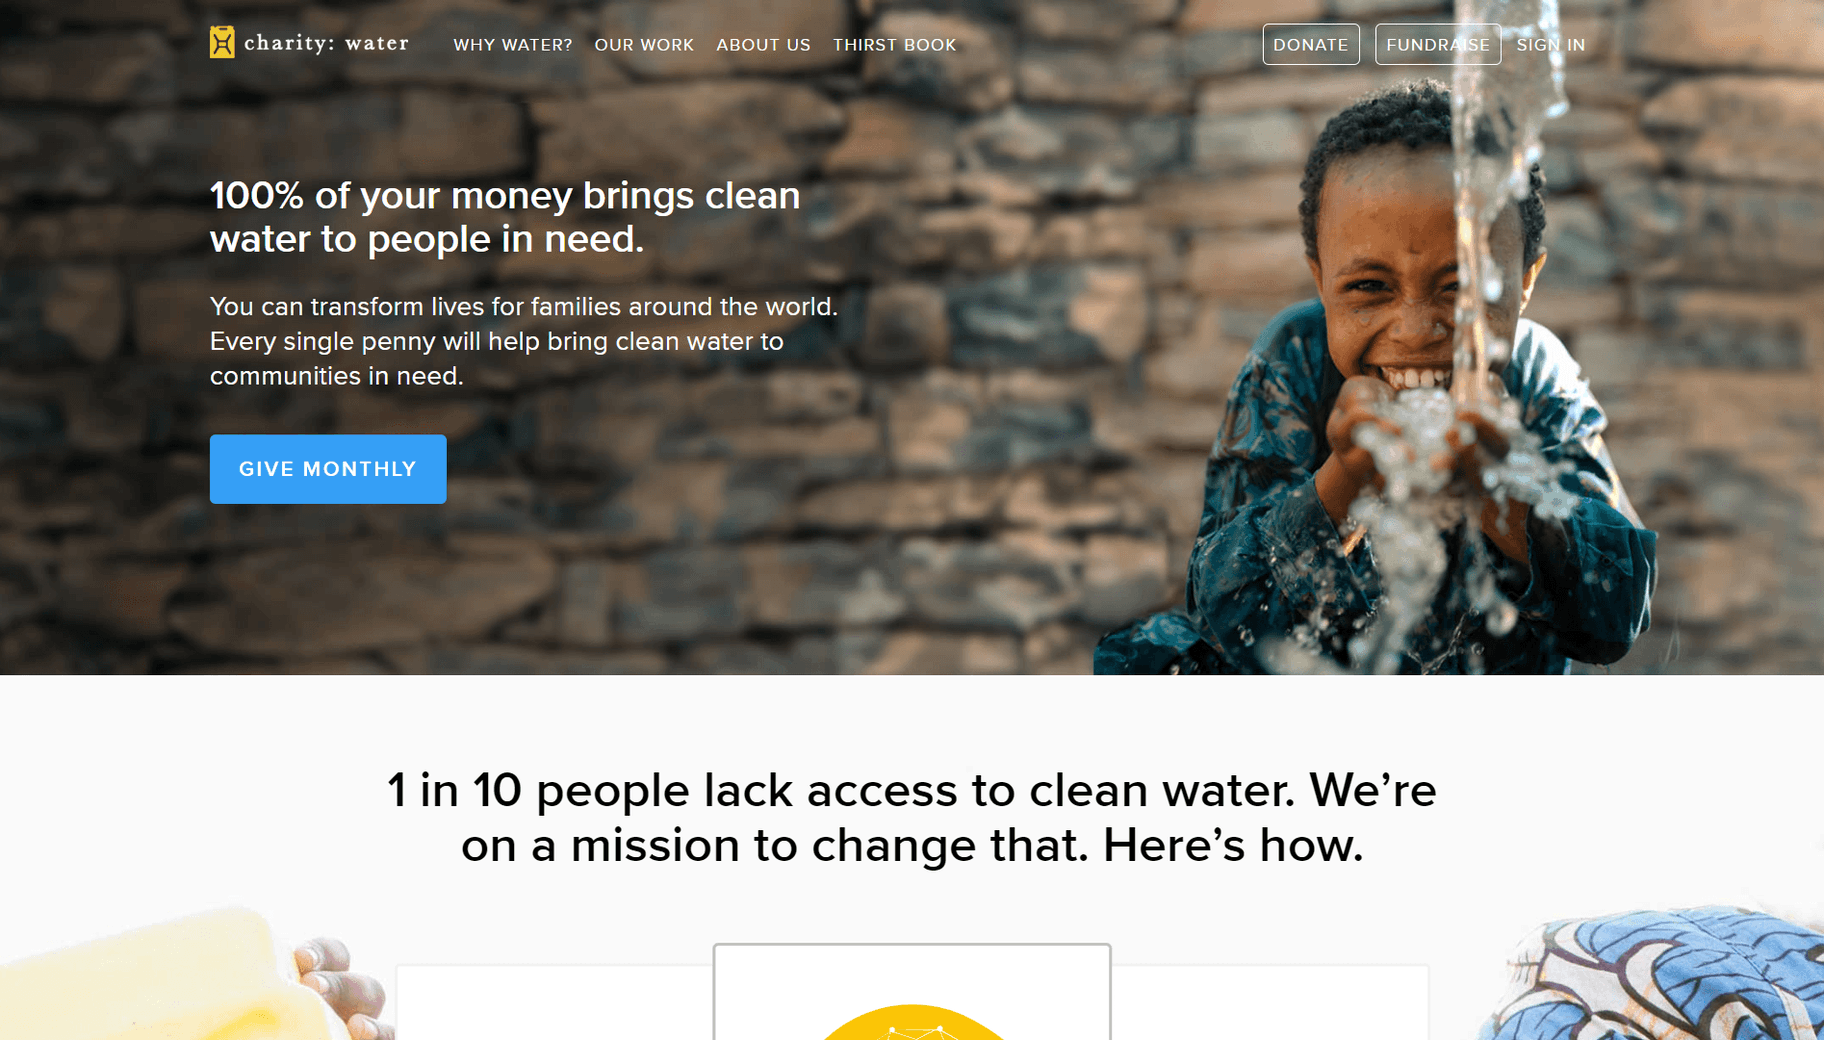 charity: water unique selling prposition